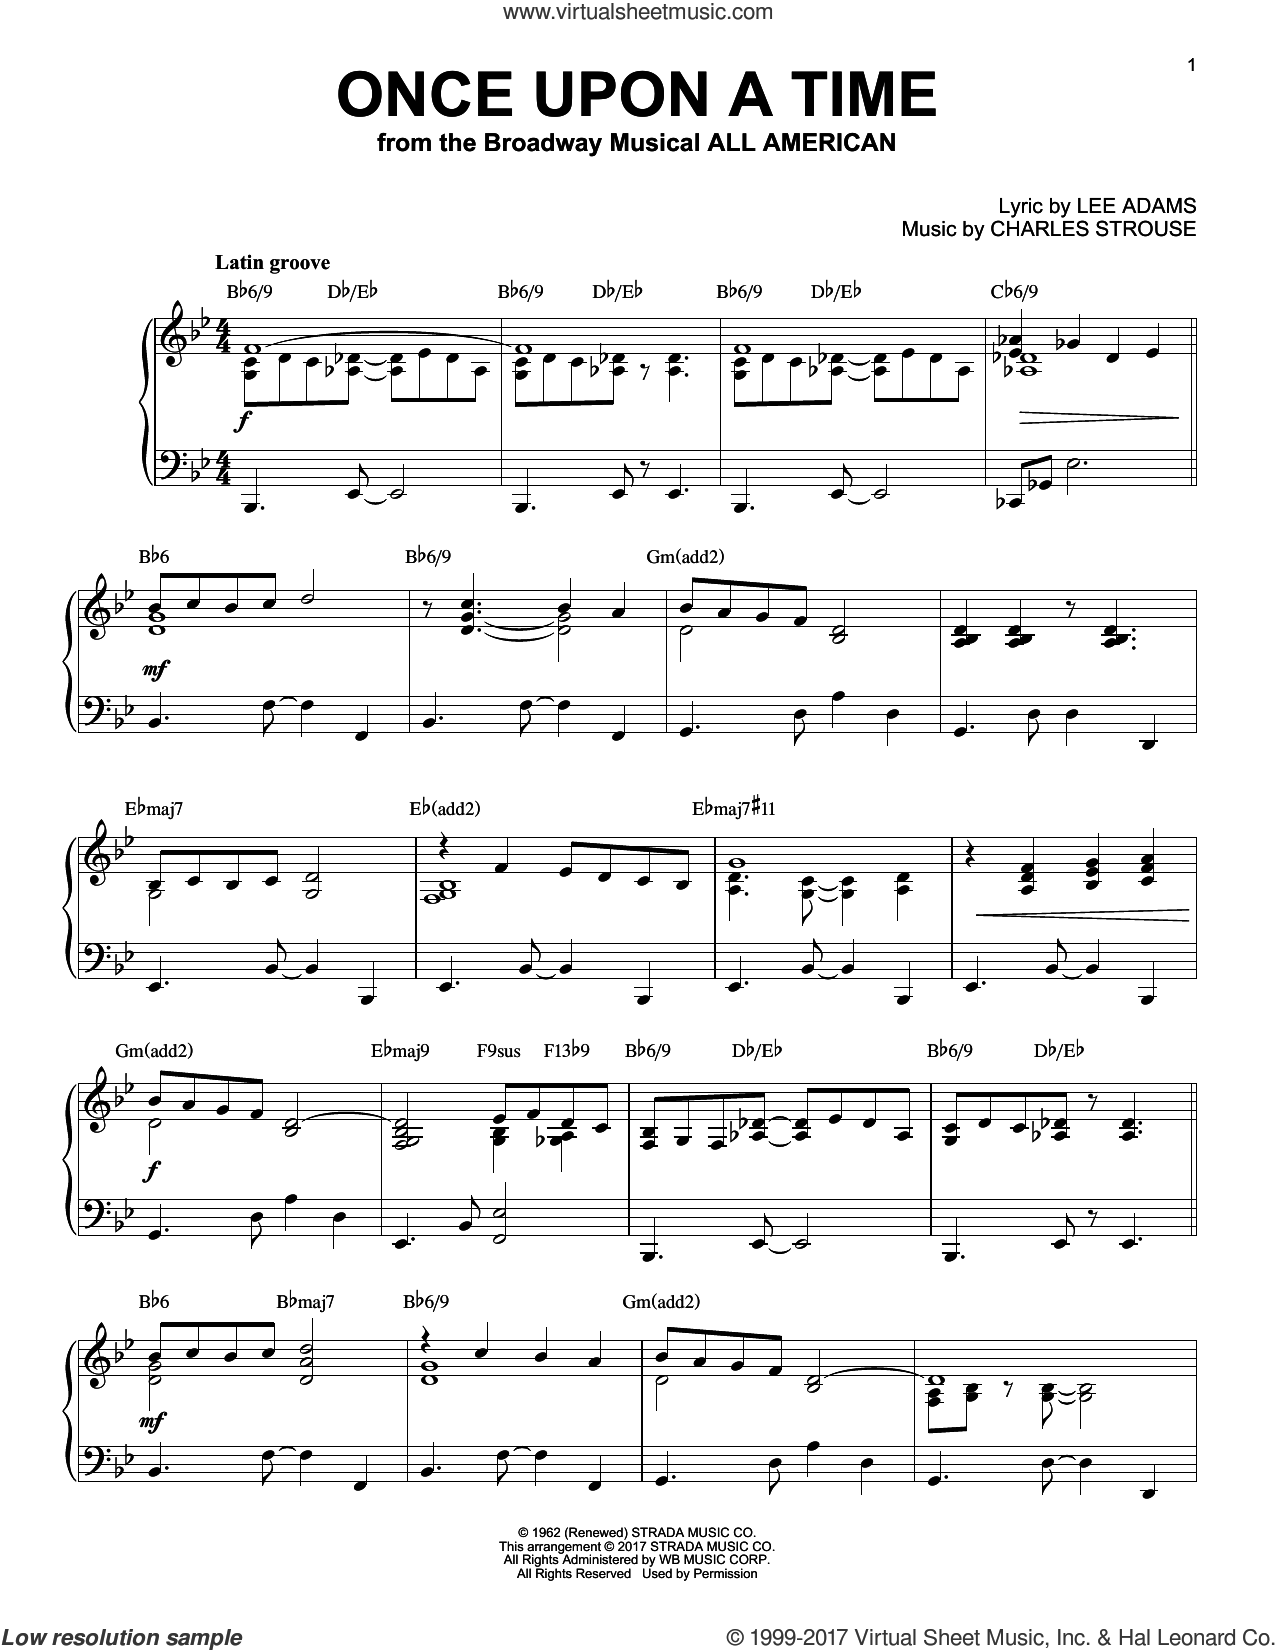 Once Upon A Time [Jazz version] sheet music for piano solo by Charles Strouse and Lee Adams, intermediate skill level